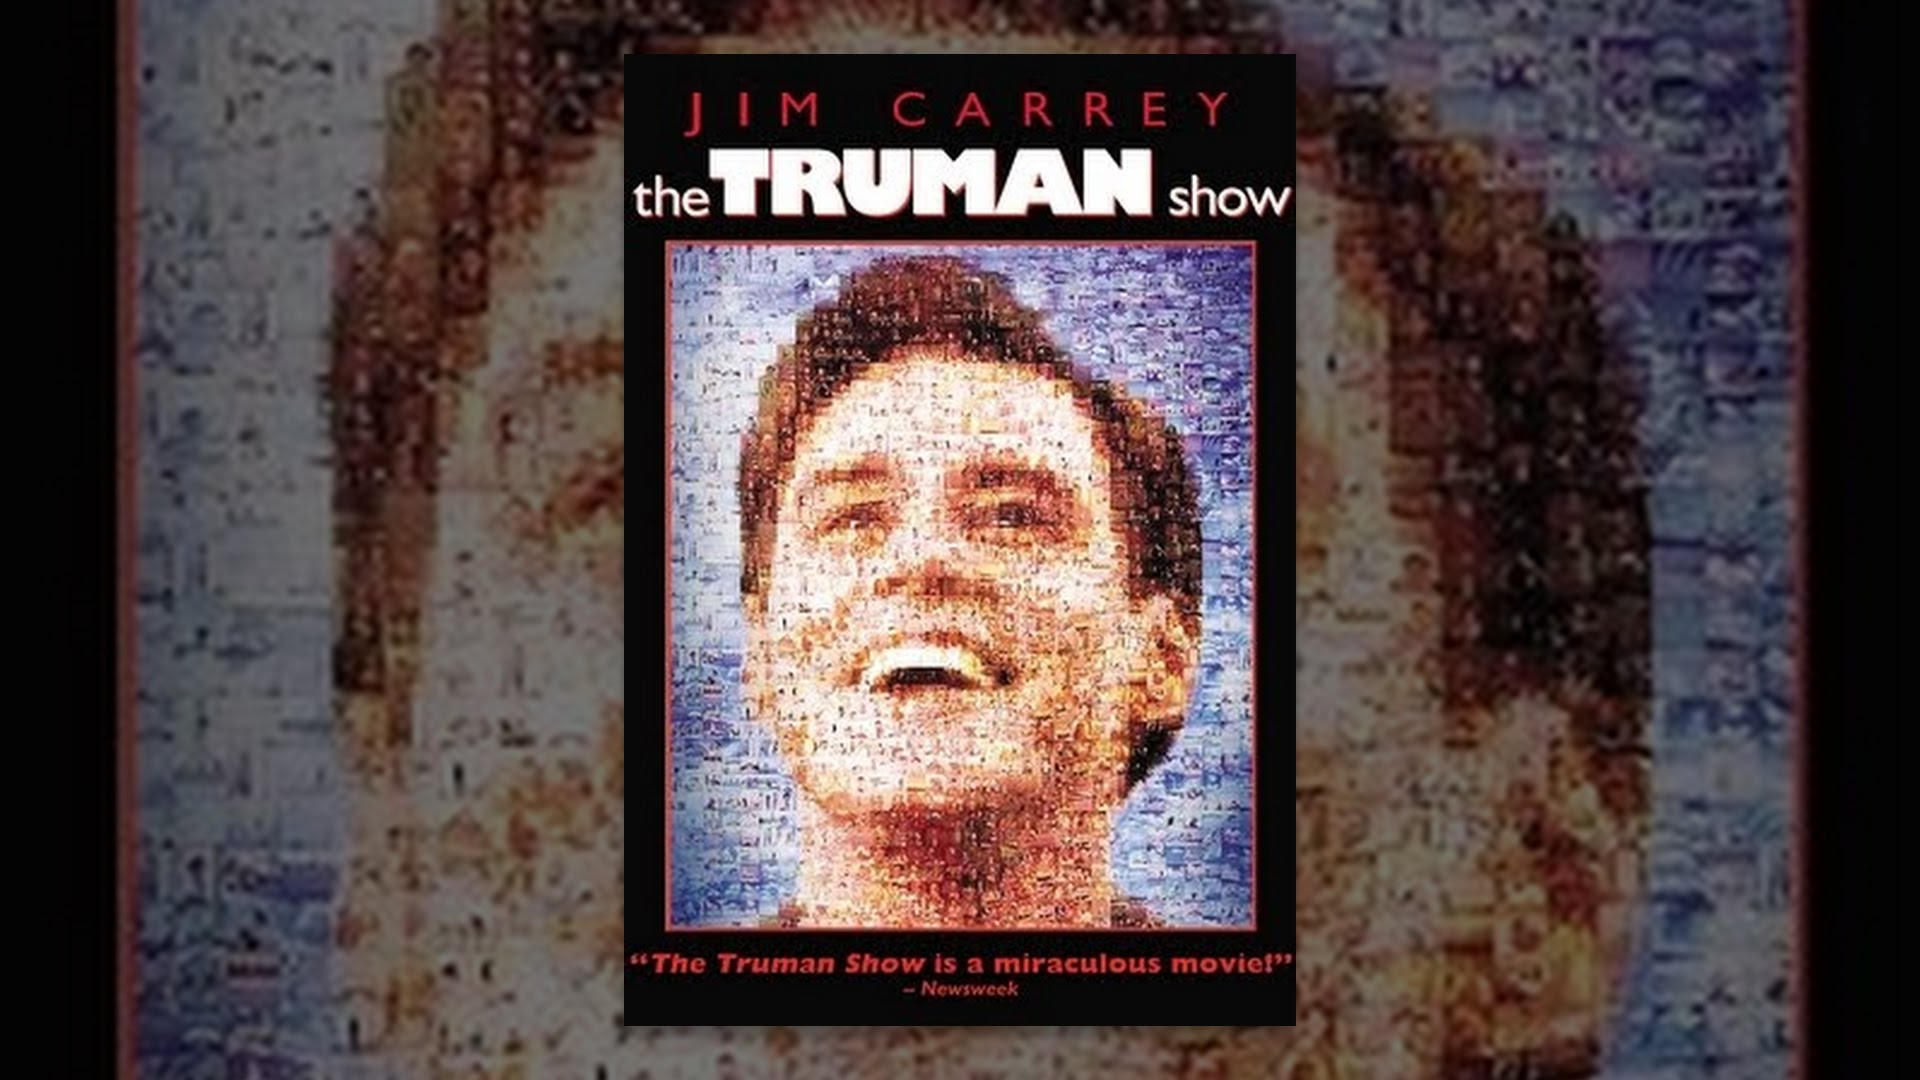 the truman show analysis and critical The truman show analysis twenty-nine years ago, a baby boy was adopted by the omnicom corporation to become the subject of the most popular television show of all time.